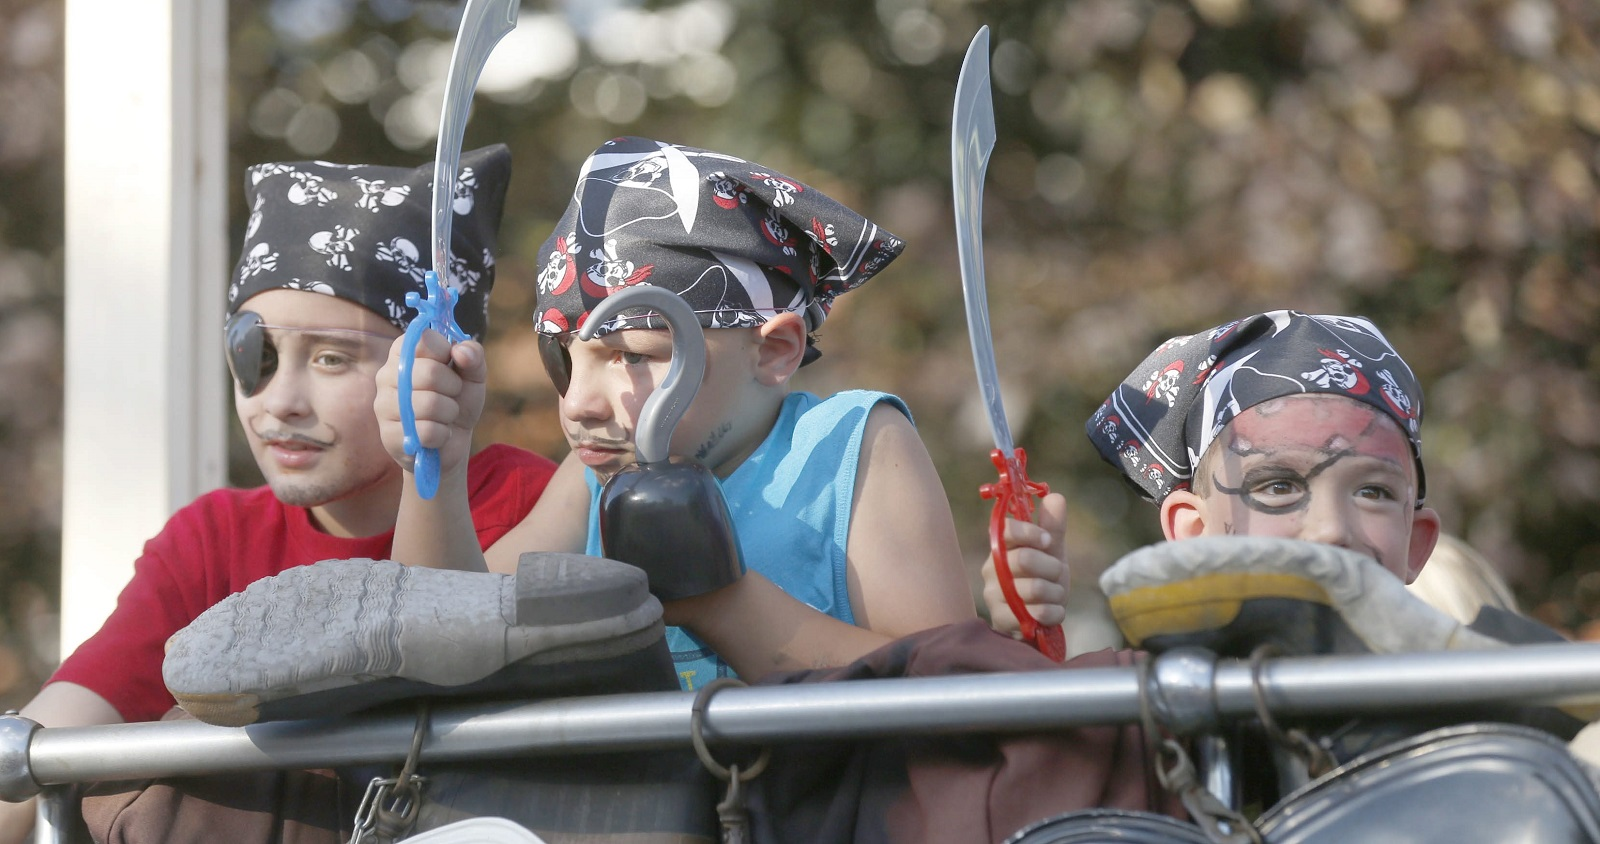 These small pirates appear to have enjoyed the Canal Fest parade. The festivities in Tonawanda run through Sunday. (Robert Kirkham/Buffalo News)